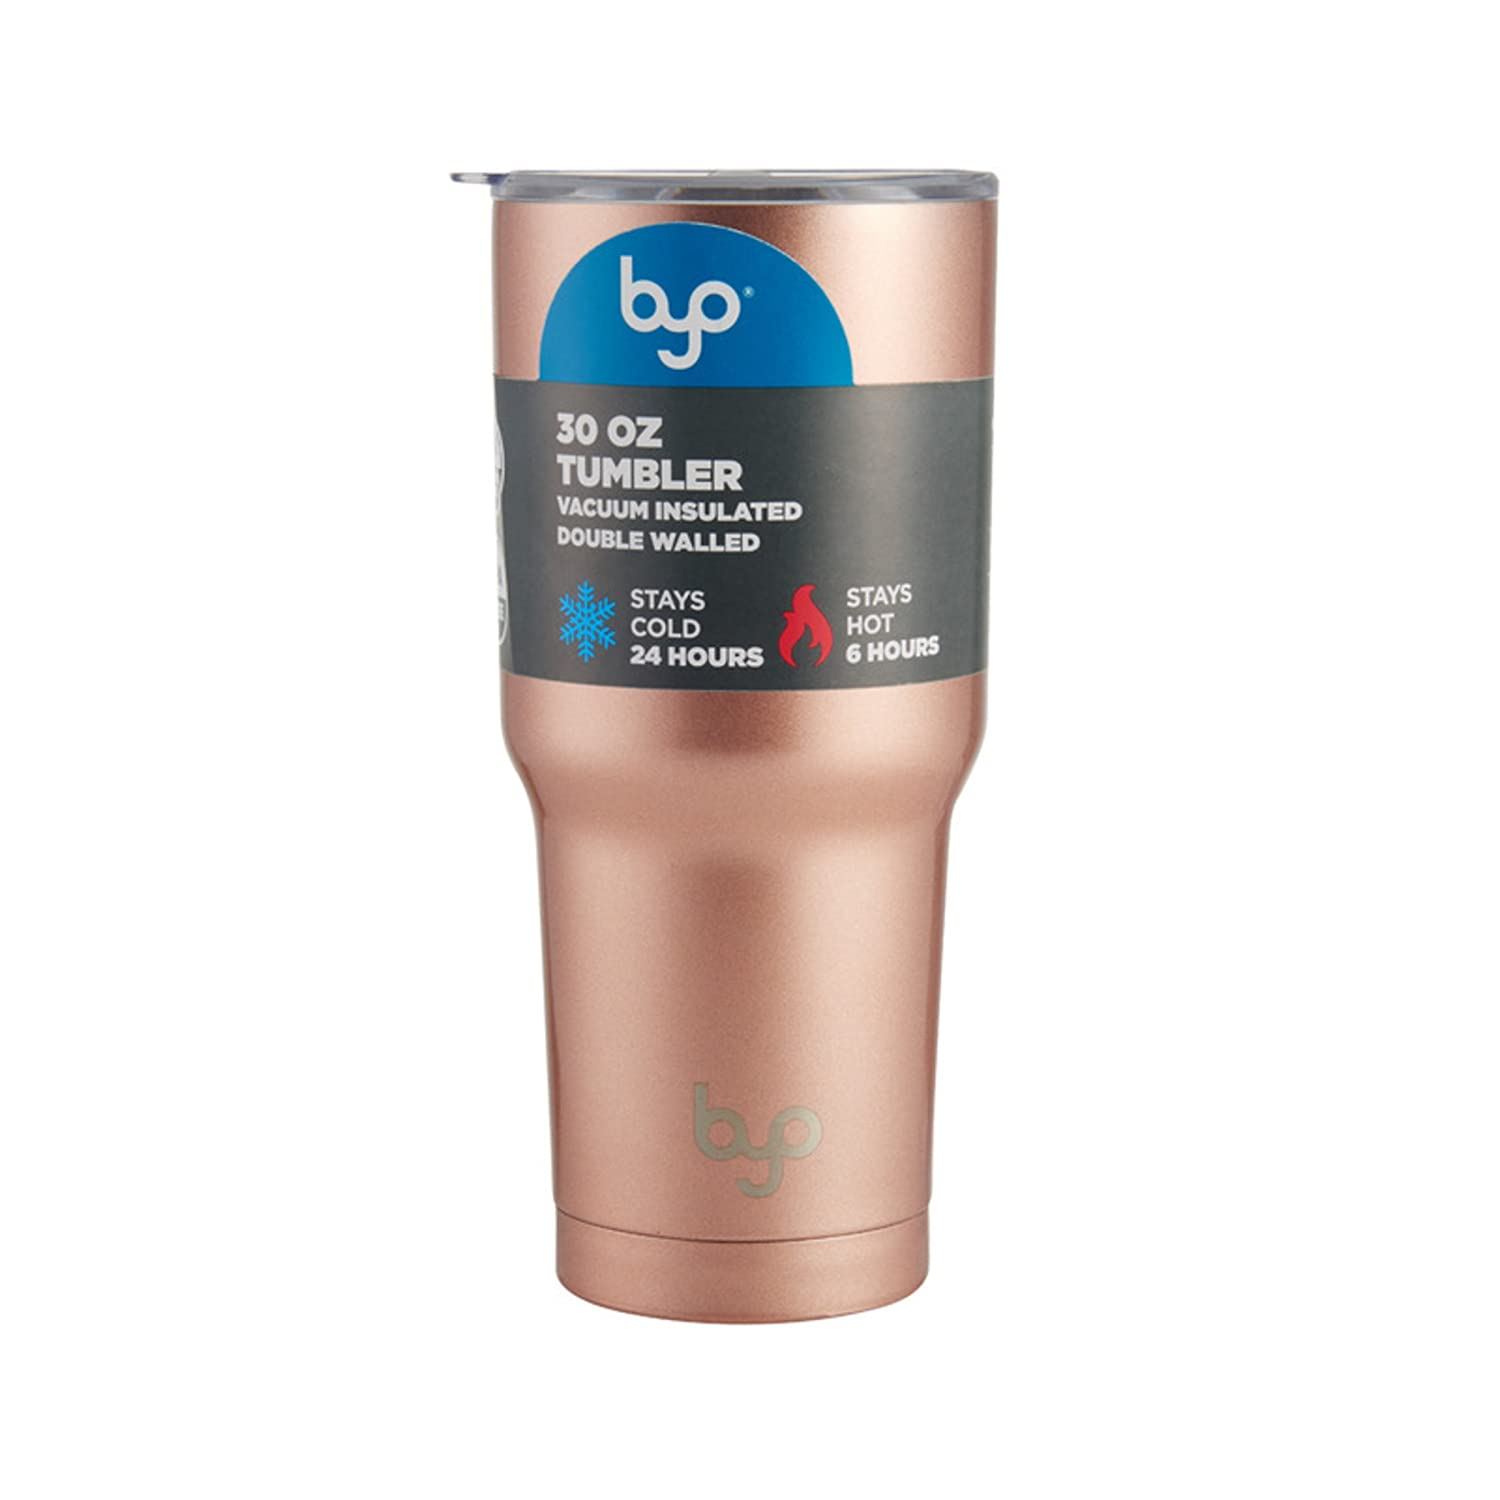 a2bdee124d7 Amazon.com: BYO 5211330 Double Wall Stainless Steel Vacuum Insulated Tumbler,  30-Ounce, Metallic Rose Gold: Kitchen & Dining